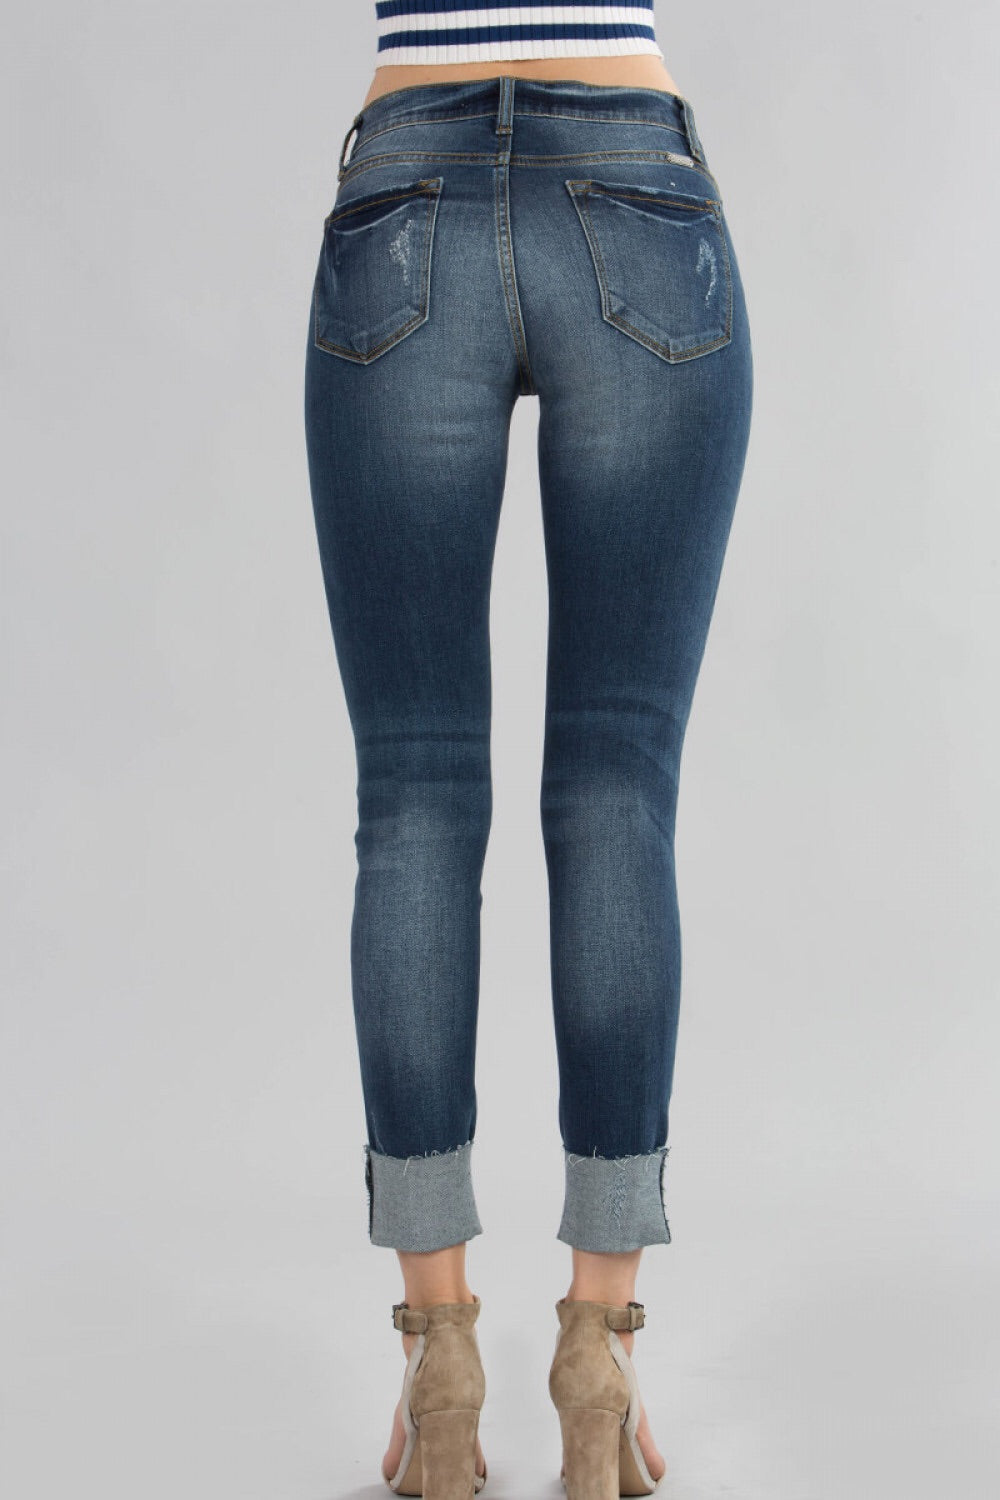 SEMI CROPPED DISTRESSED MEDIUM DENIM - KanCan